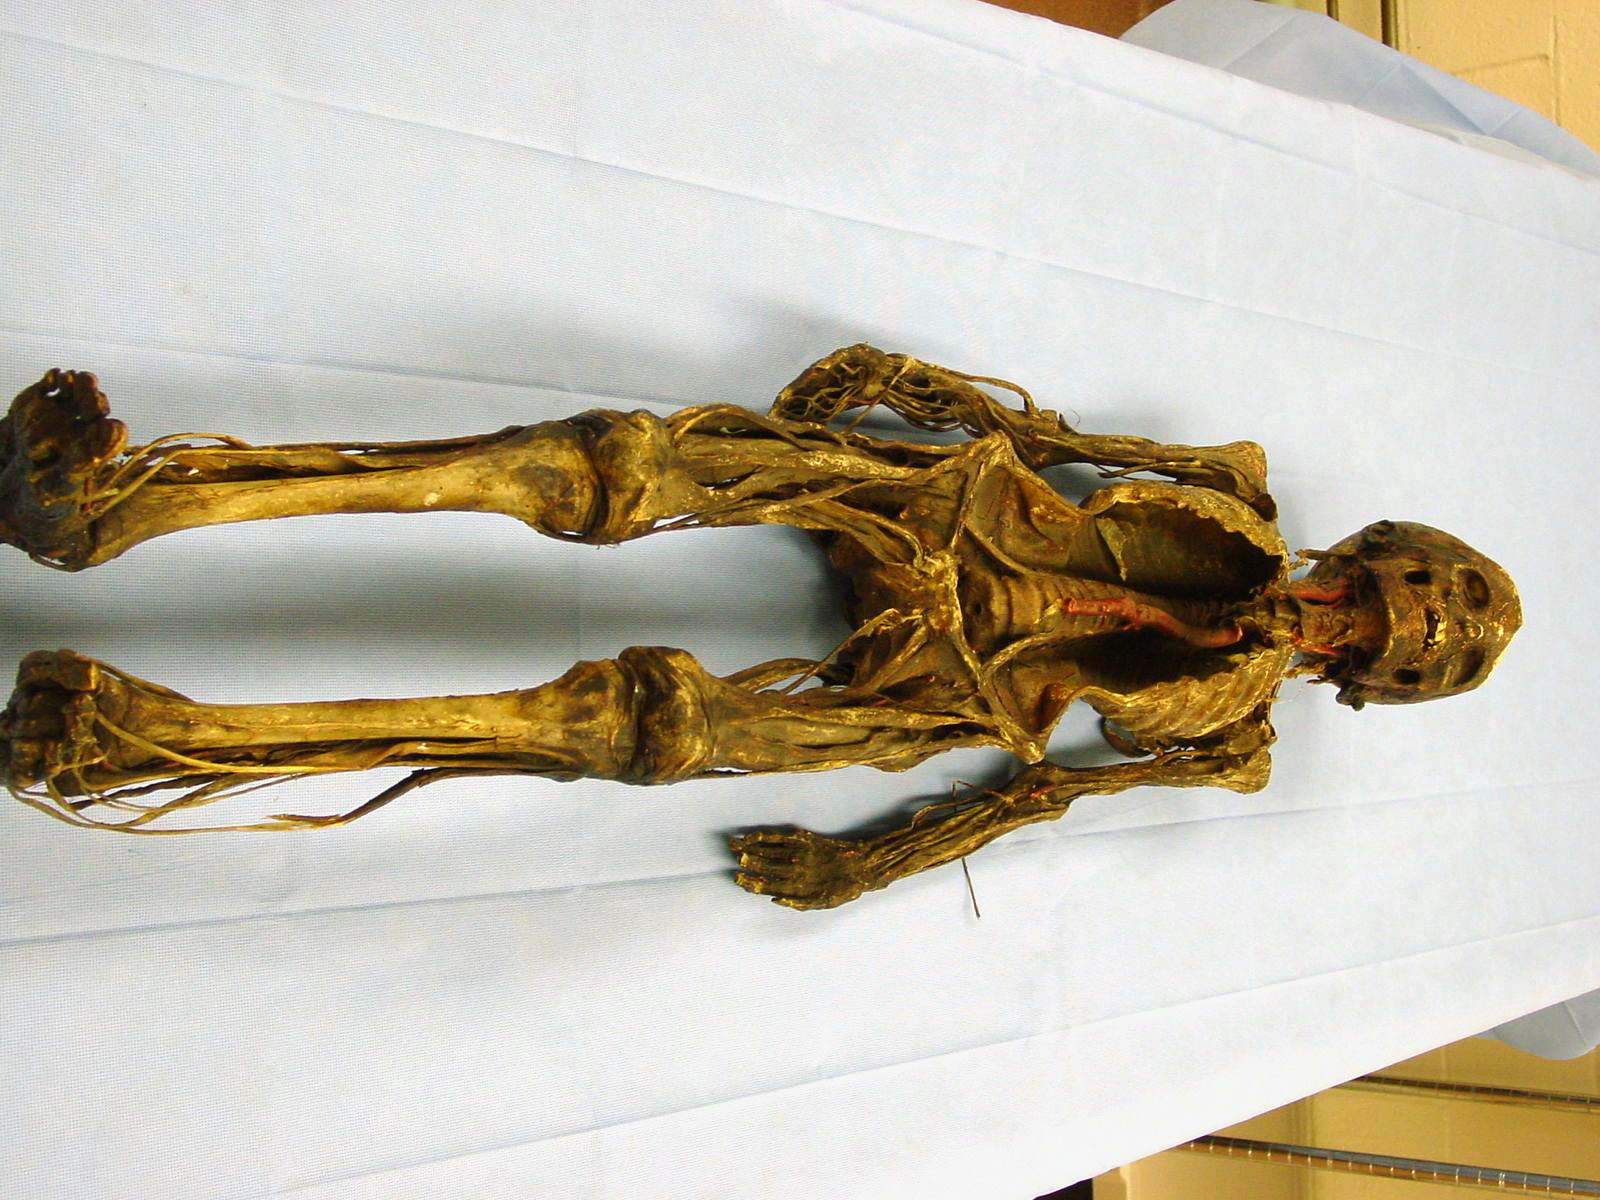 A Burns Collection specimen that was used to teach anatomy to medical students.